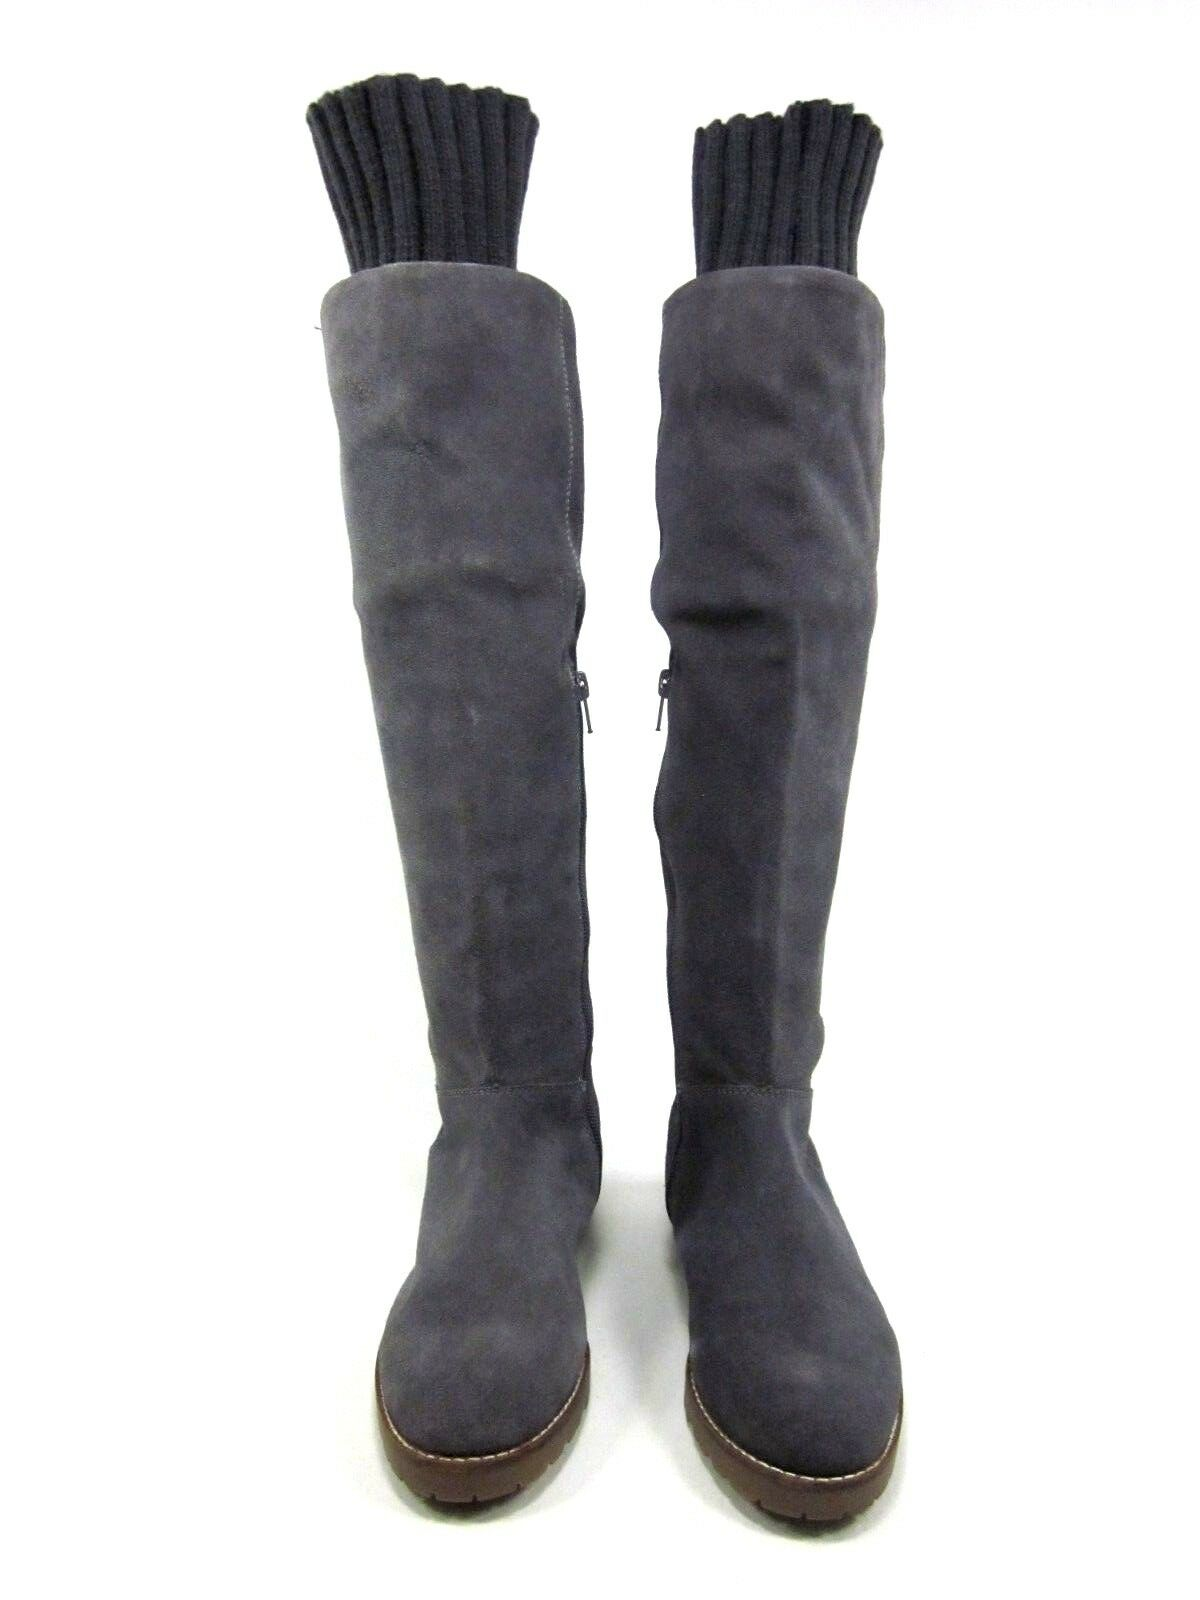 CORSO COMO COMO COMO WOMEN'S RADAR BOOT, ANTHRACITE SUEDE, US SIZE 6 M, NEW DISPLAY 93e542